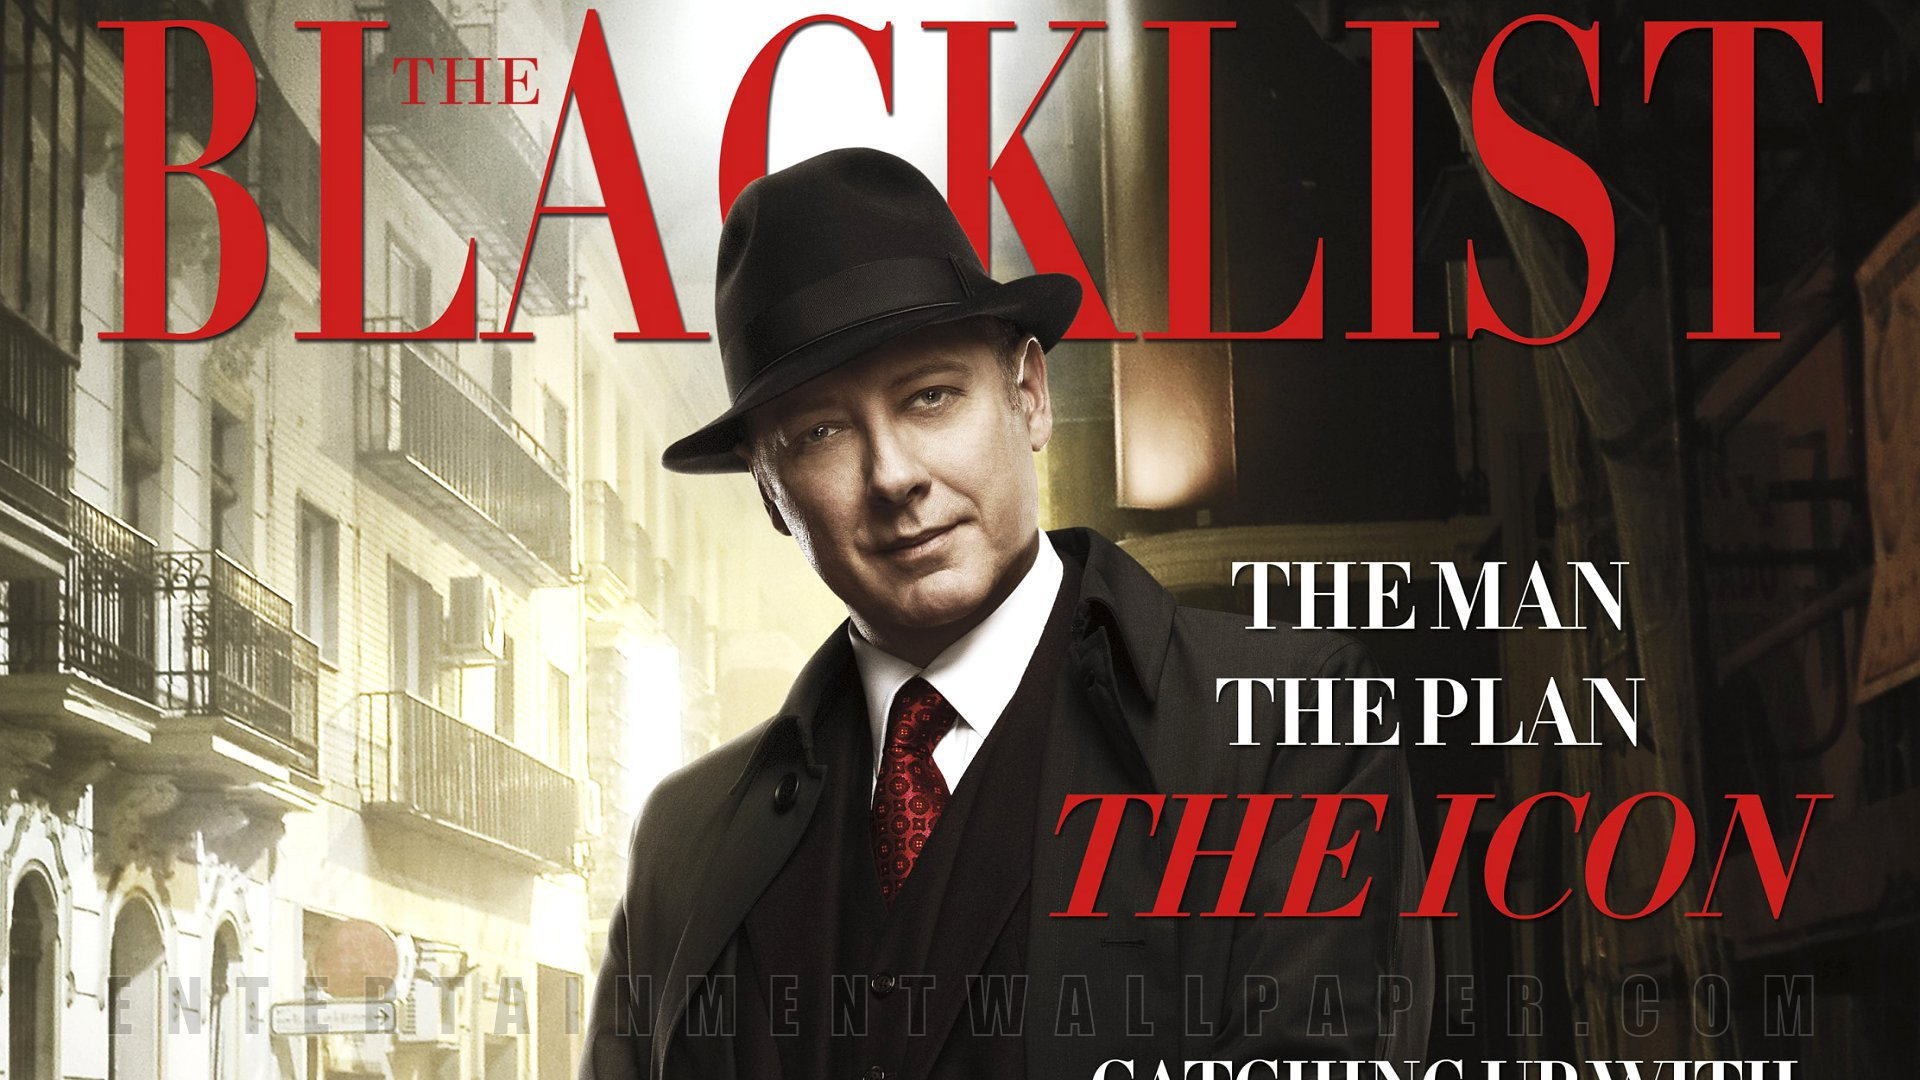 The Blacklist TV series 1920x1080p HD